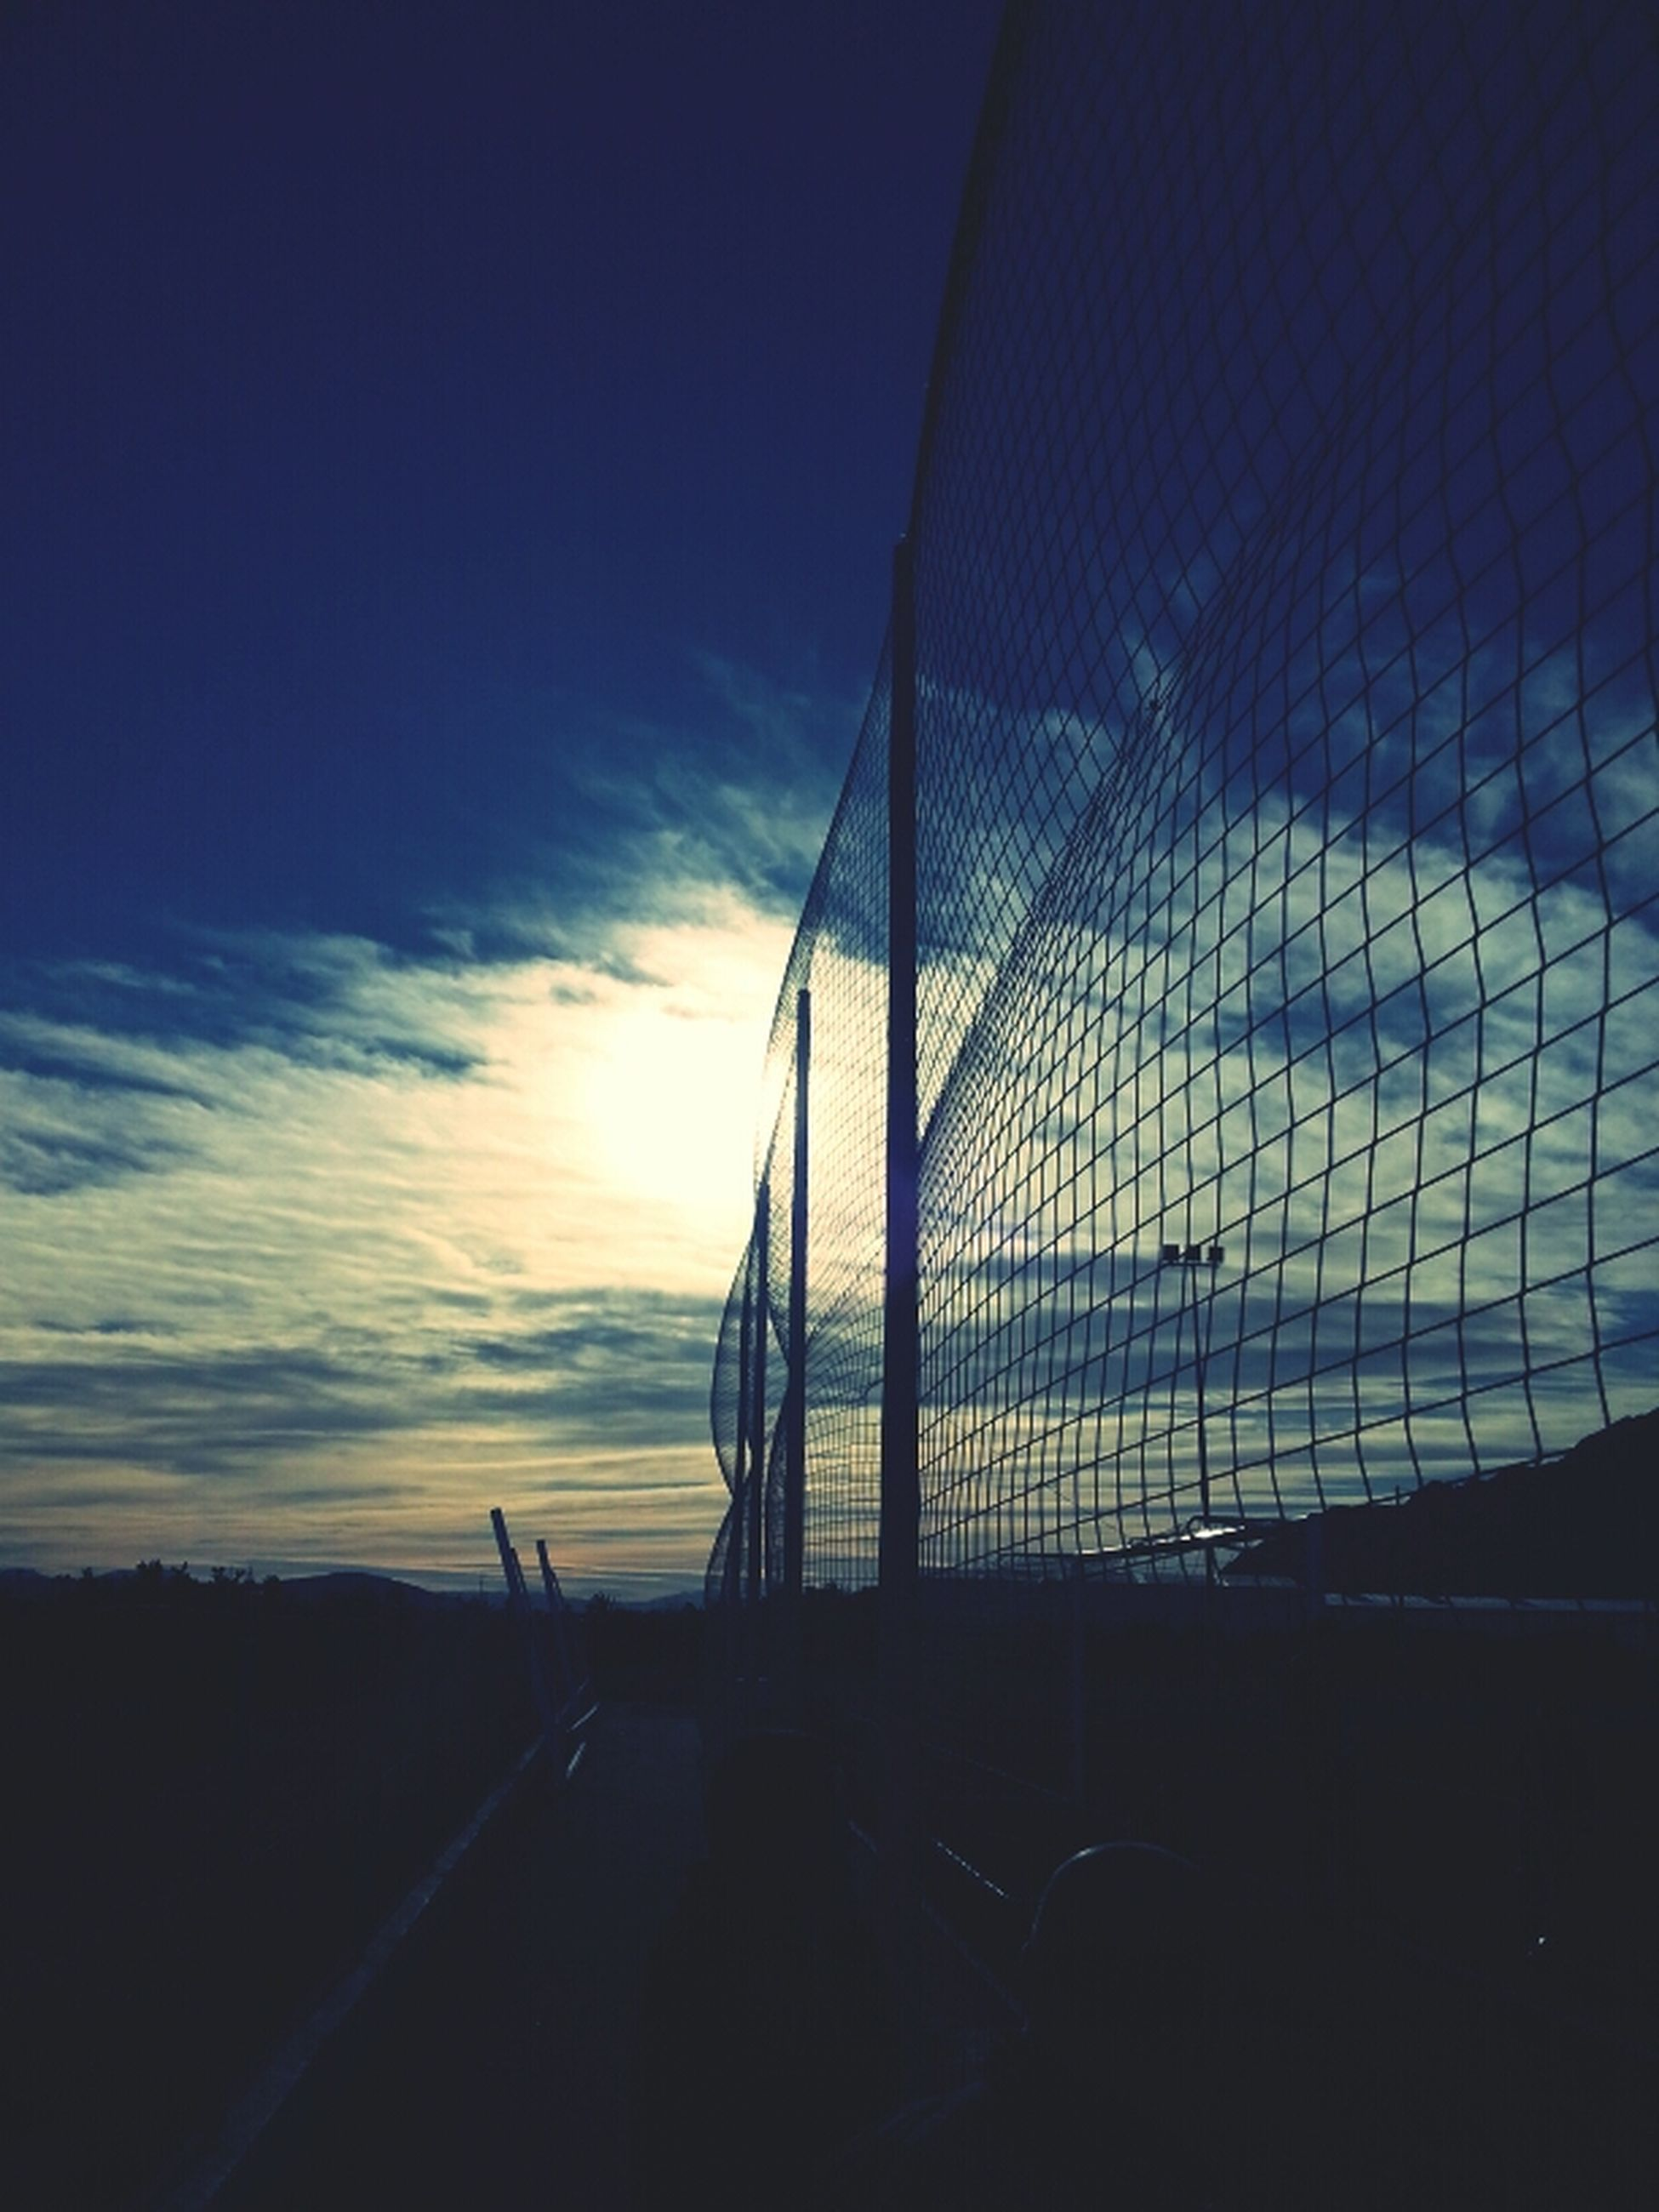 sky, sunset, silhouette, transportation, road, railing, cloud - sky, connection, blue, dusk, cloud, built structure, bridge - man made structure, outdoors, sunlight, no people, nature, the way forward, fence, tranquility